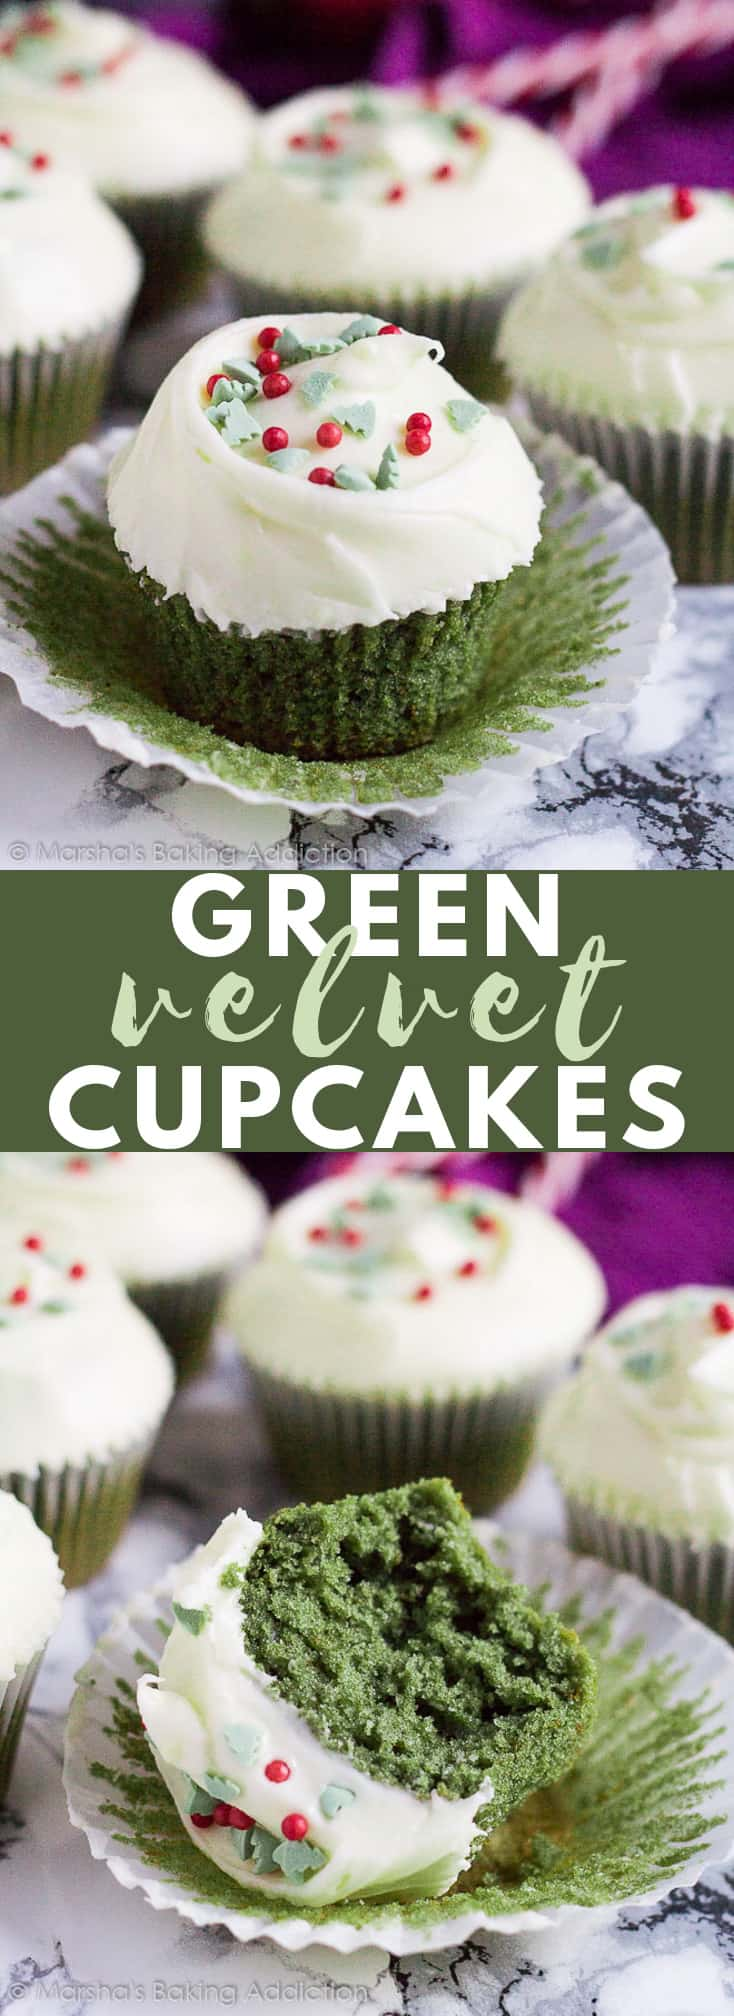 Green Velvet Cupcakes- Deliciously moist and fluffy green vanilla cupcakes topped with a cream cheese frosting and Christmas sprinkles! #greenvelvet #cupcakes #cupcakerecipes #christmas #christmasrecipes